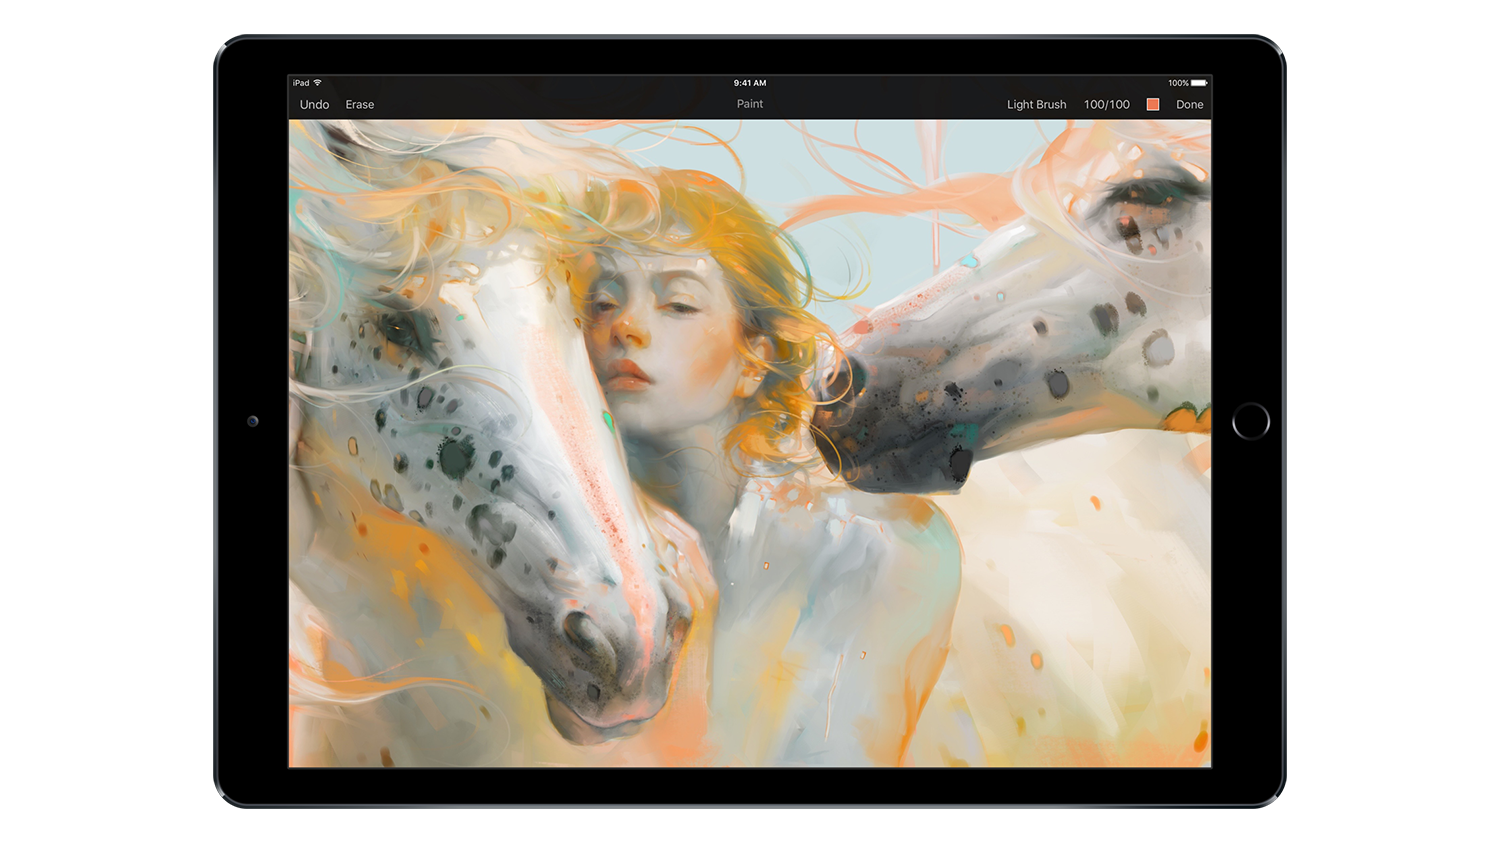 Pixelmator 2 2 Is Here With Support For The Ipad Pro Apple Pencil And 3d Touch Digital Arts